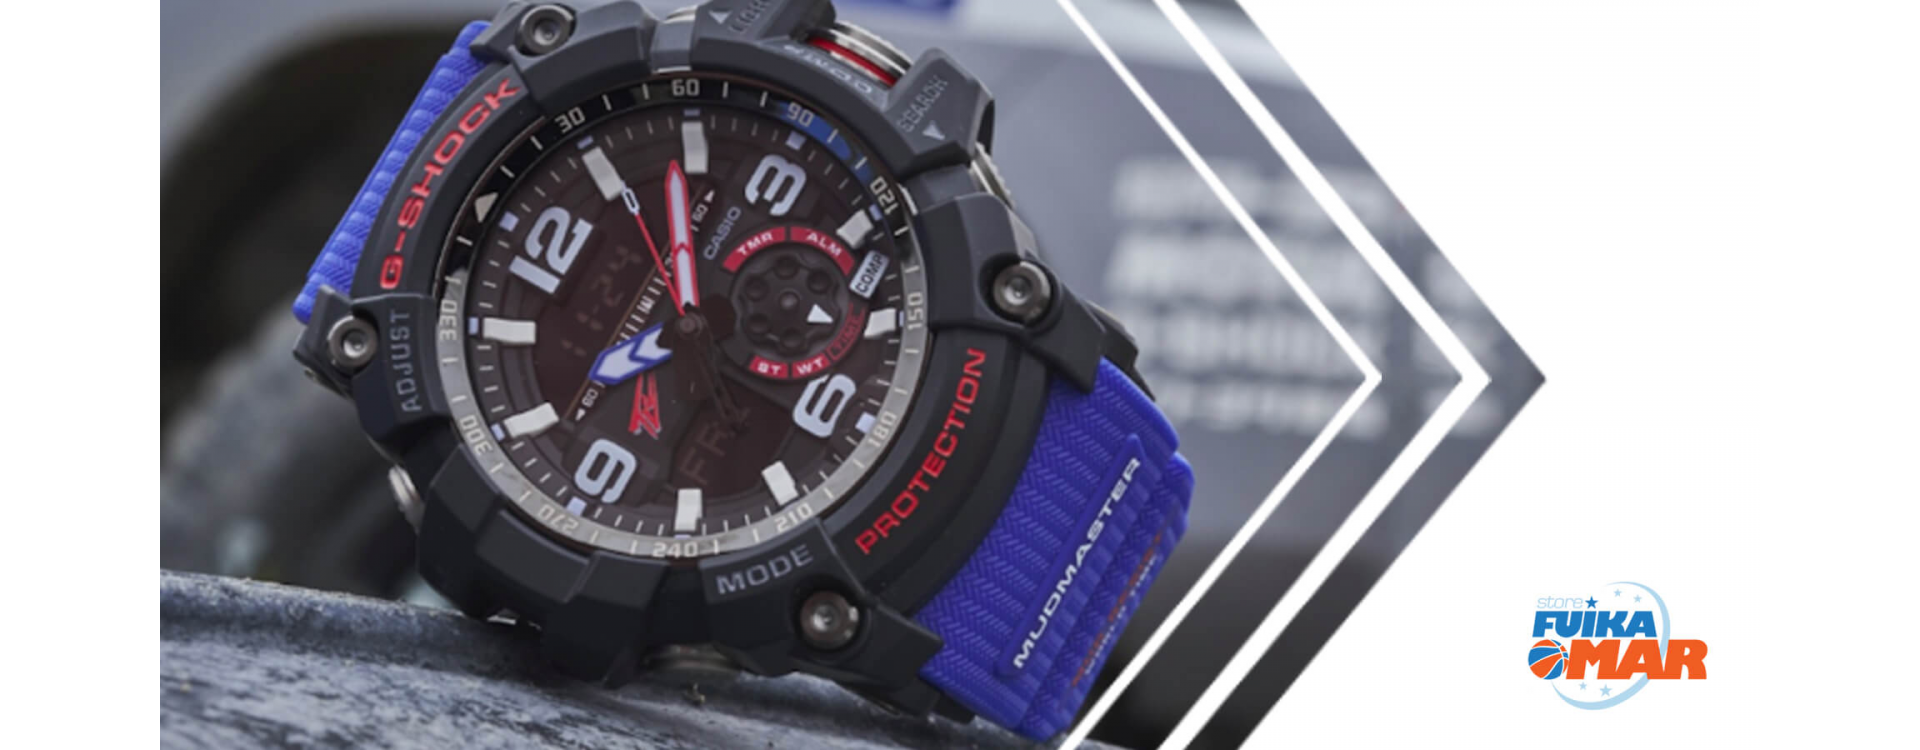 Casio G-Shock Mudmaster Team Land Cruiser